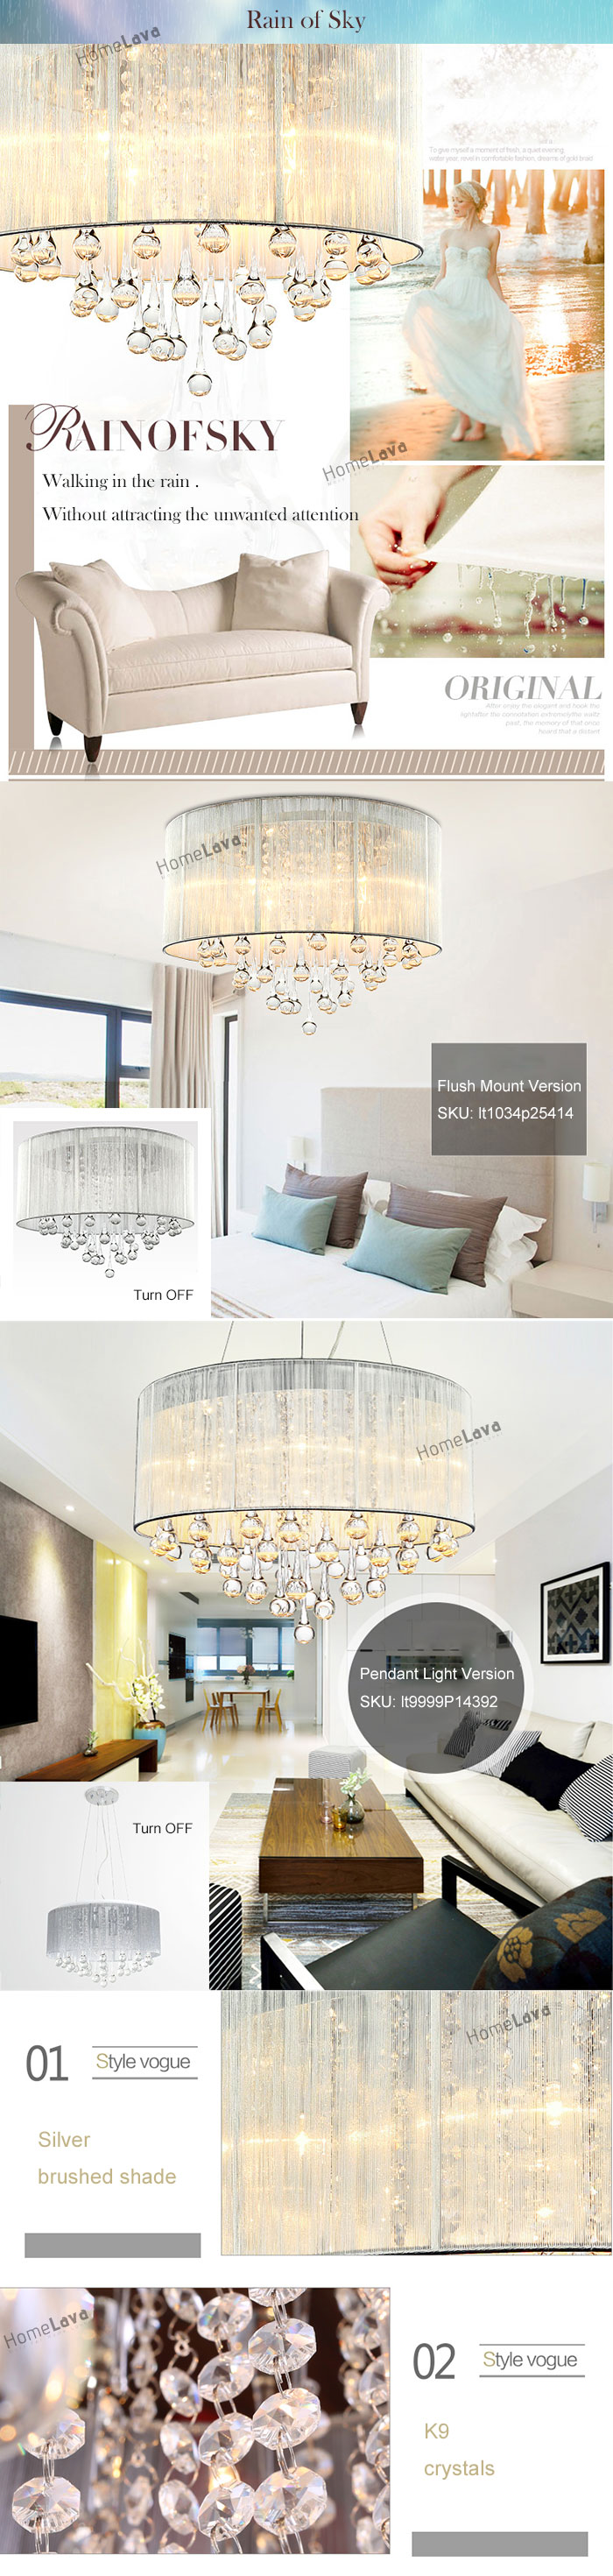 Modern Simple Fashion Round Crystal Flush Mount Ceiling Light 6 Lights(Rain of Sky)